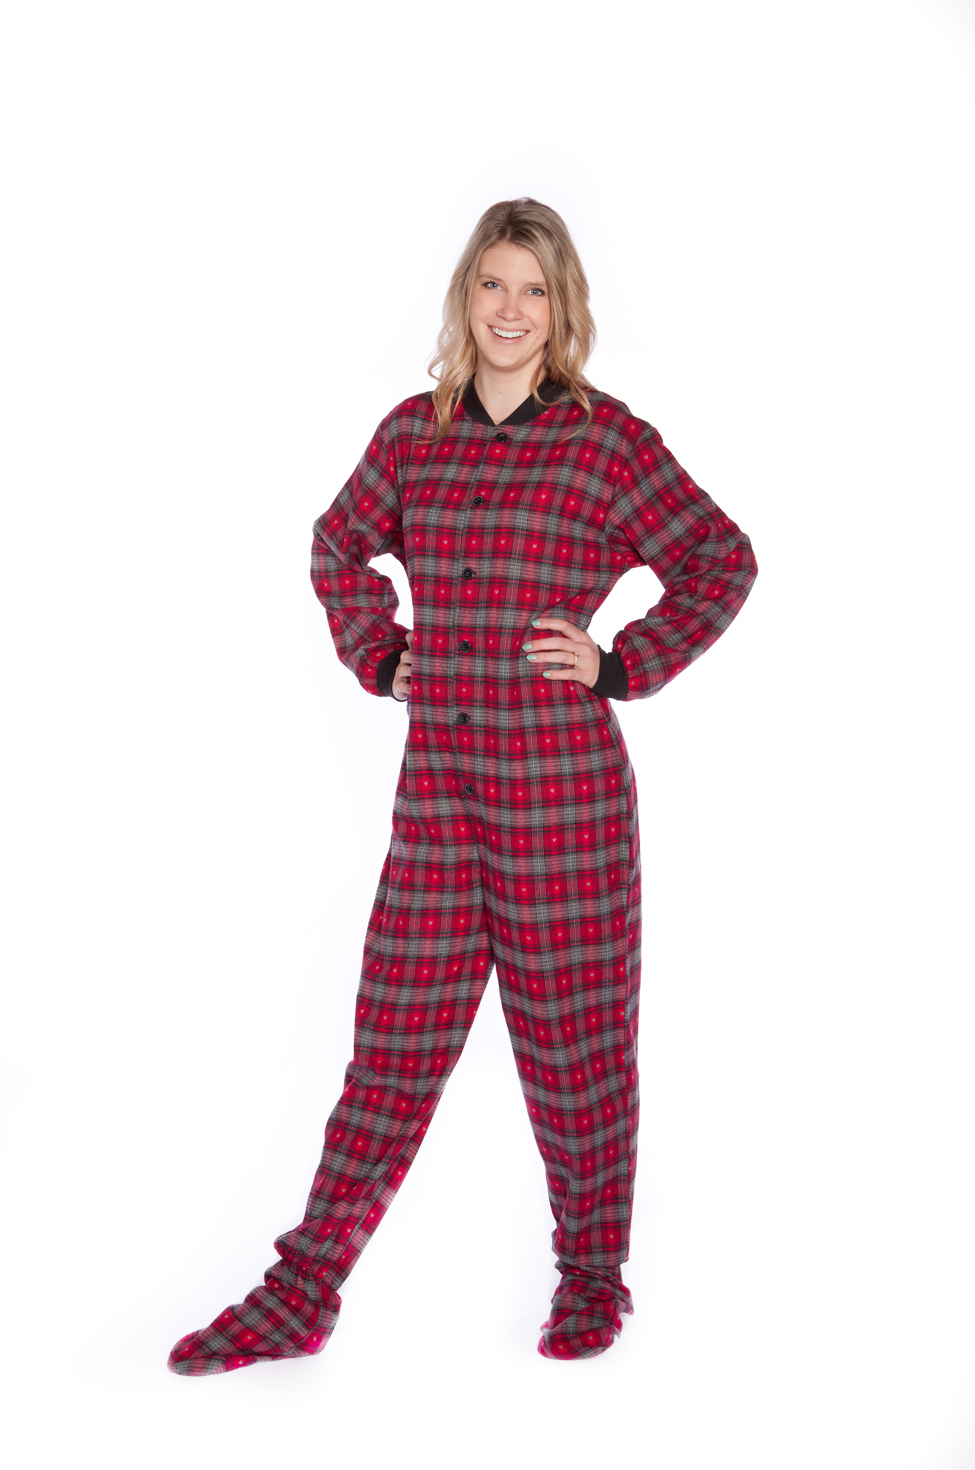 ffe6da69d8 Red and Grey Flannel Adult Footed Pajamas with Small Gray Hearts SIZES XS    L  Big Feet Onesie Footed Pajamas